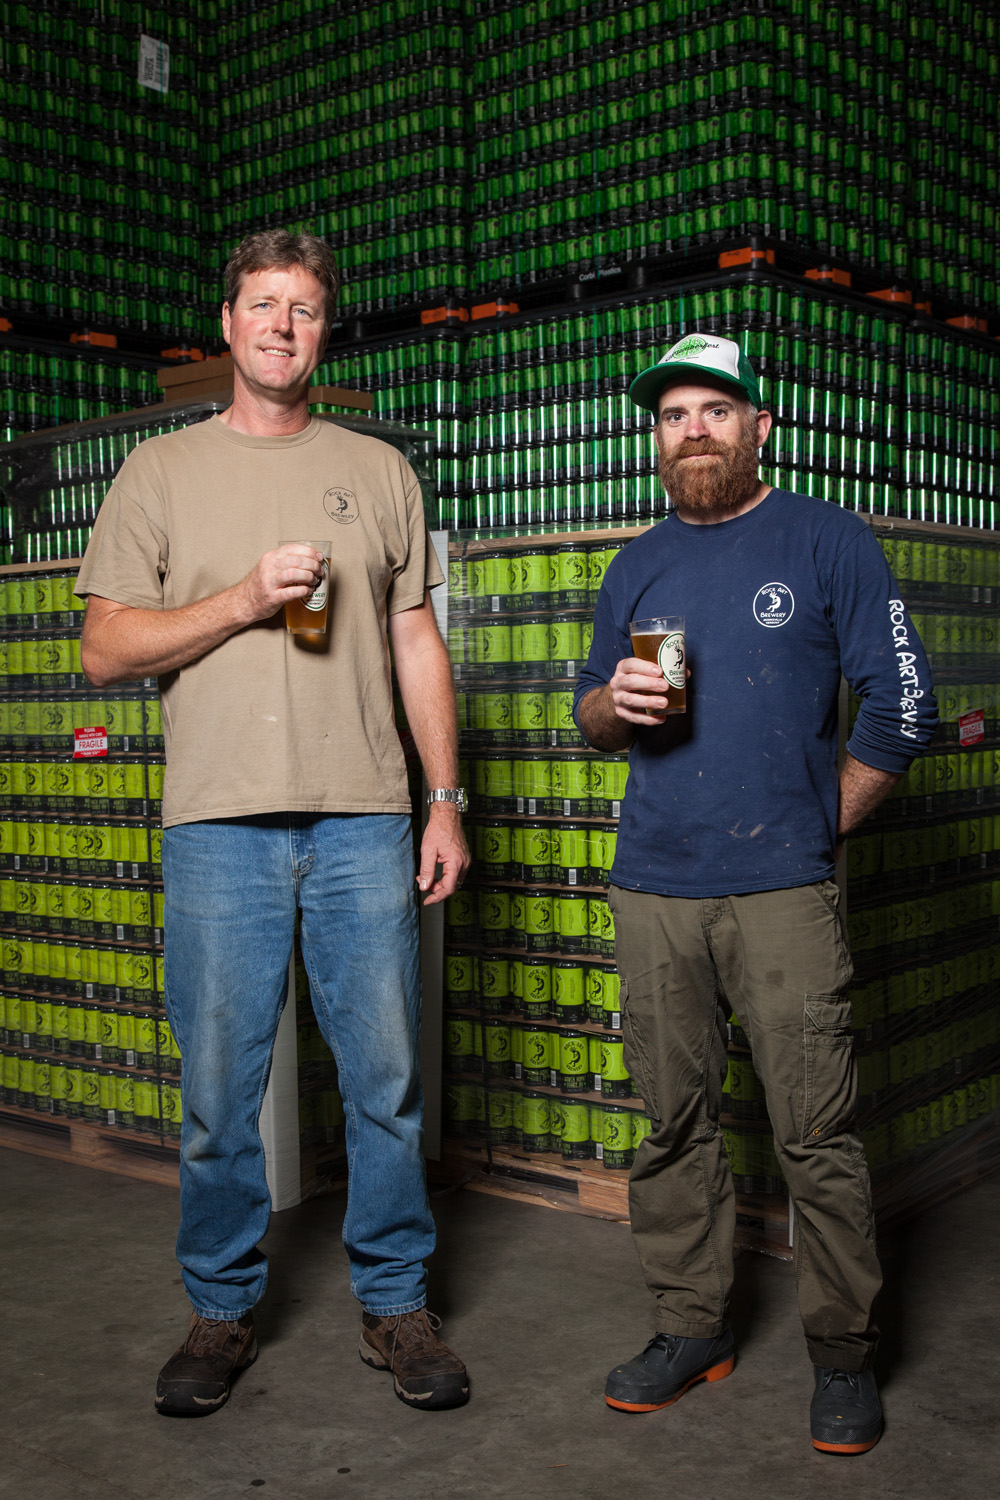 Matt Nadeau, Brewmaster and Chad McGinnis, Head Brewer at Rock Art Brewery Morrisville, VT Established in 1997